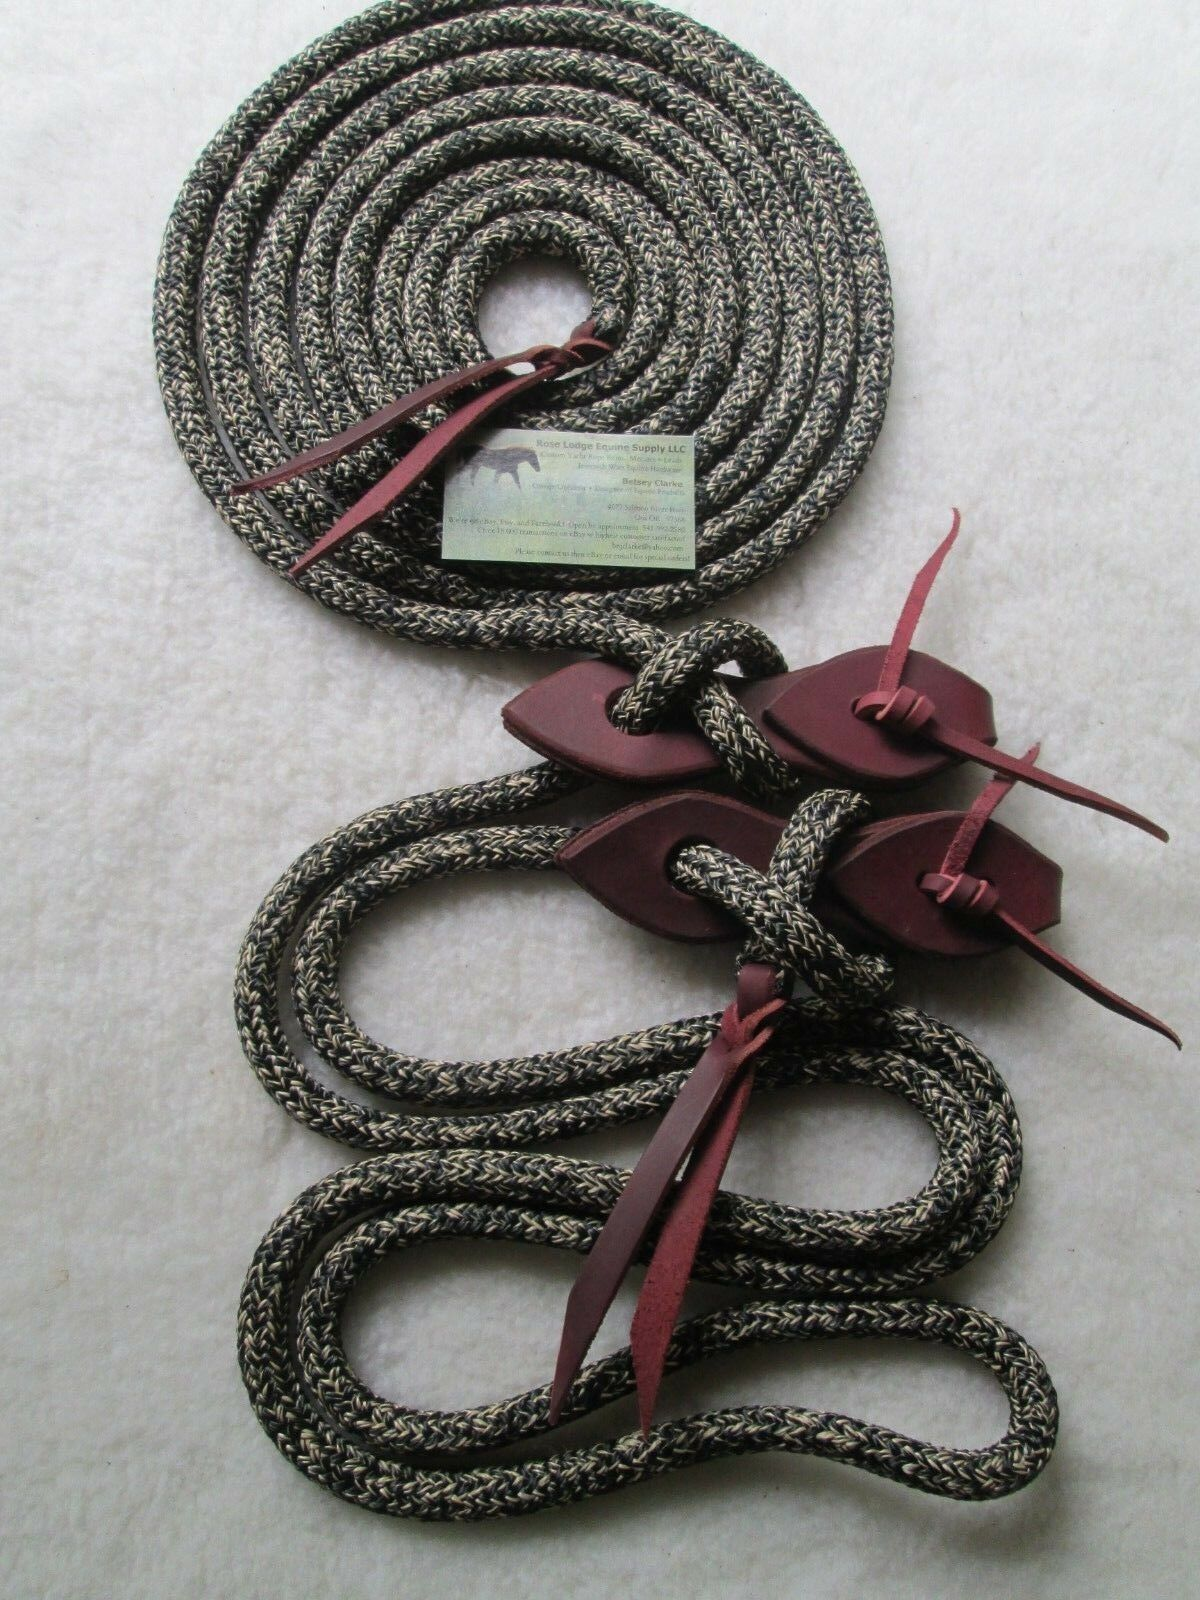 22' CAMO Yacht Rope Mecate Reins w Teardrop Slobber Straps,  pink Lodge Equine   choose your favorite